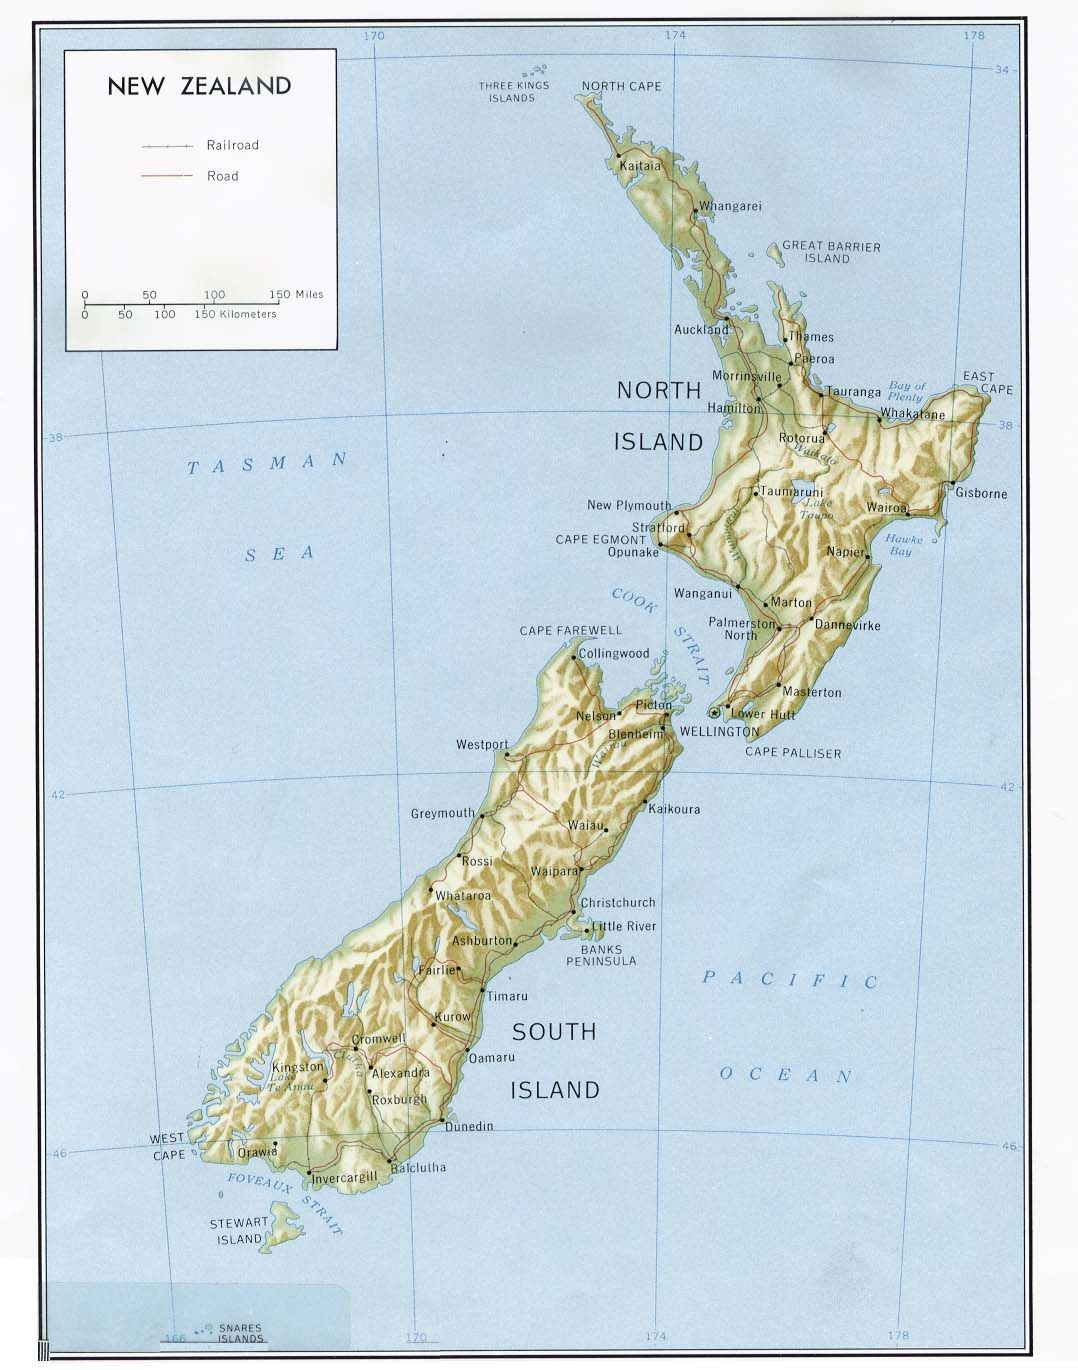 new zealand map - Free Large Images | Wedding Gift Projects ...